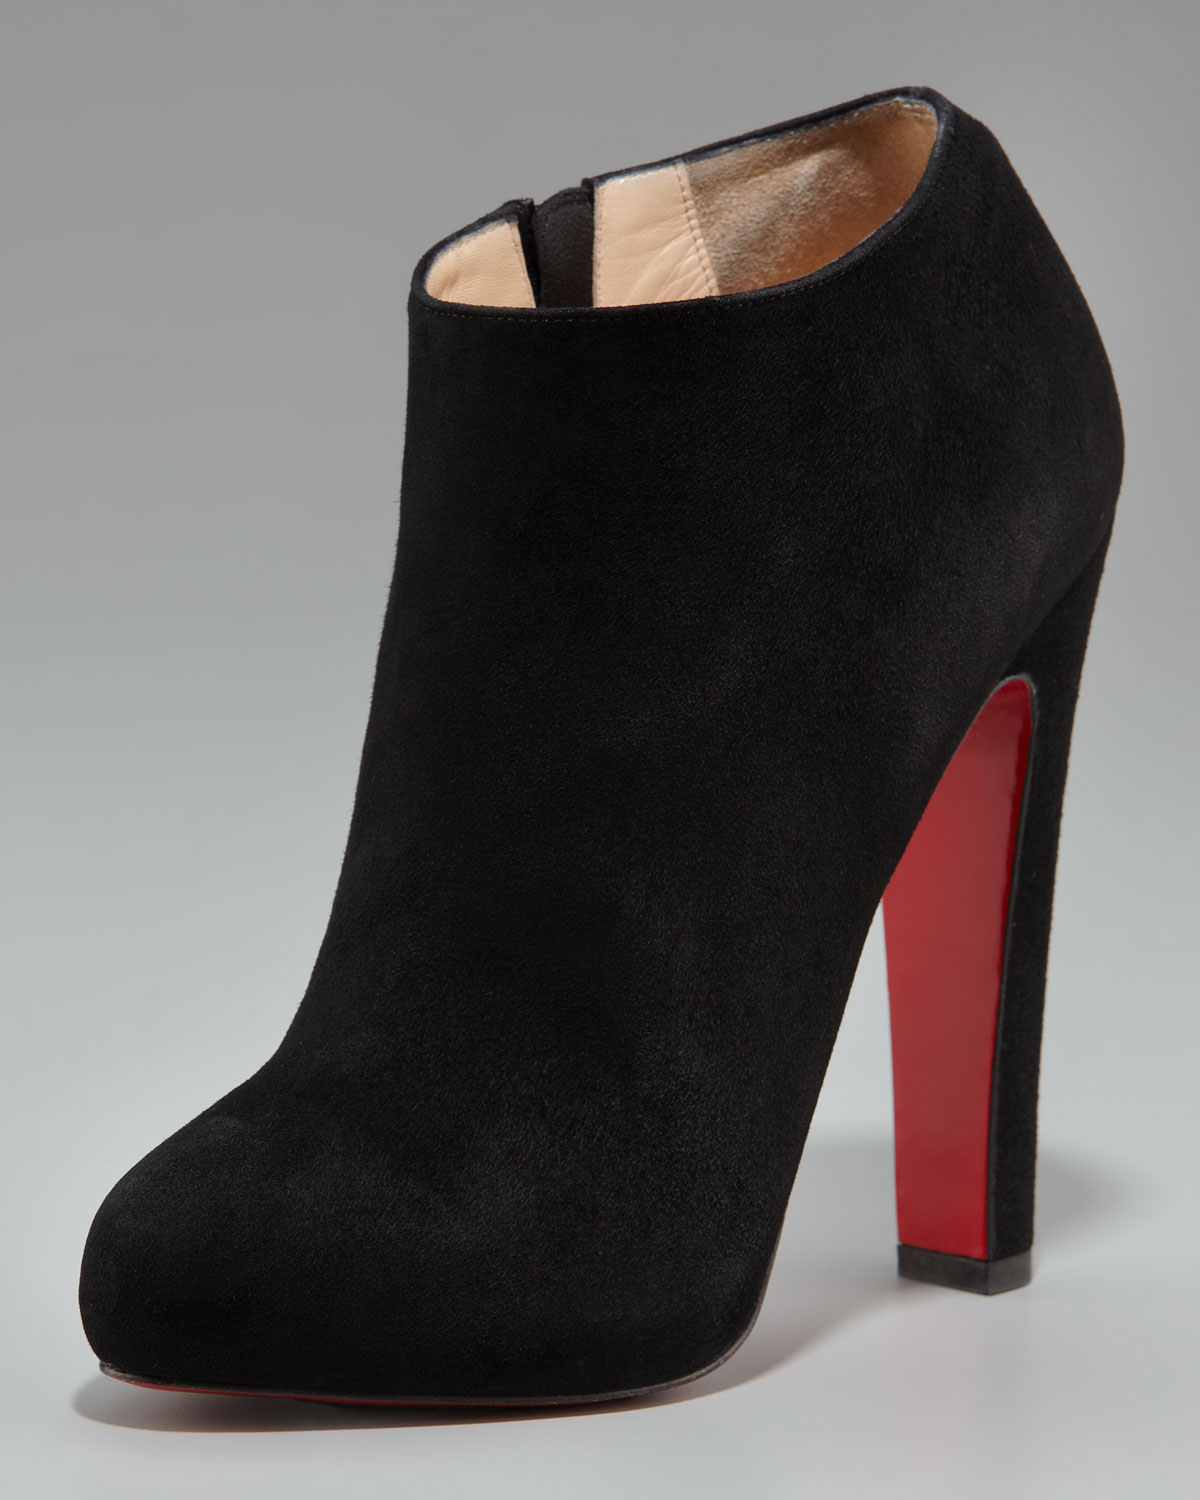 Christian louboutin Suede Thick-heel Bootie in Brown (bordeaux) | Lyst